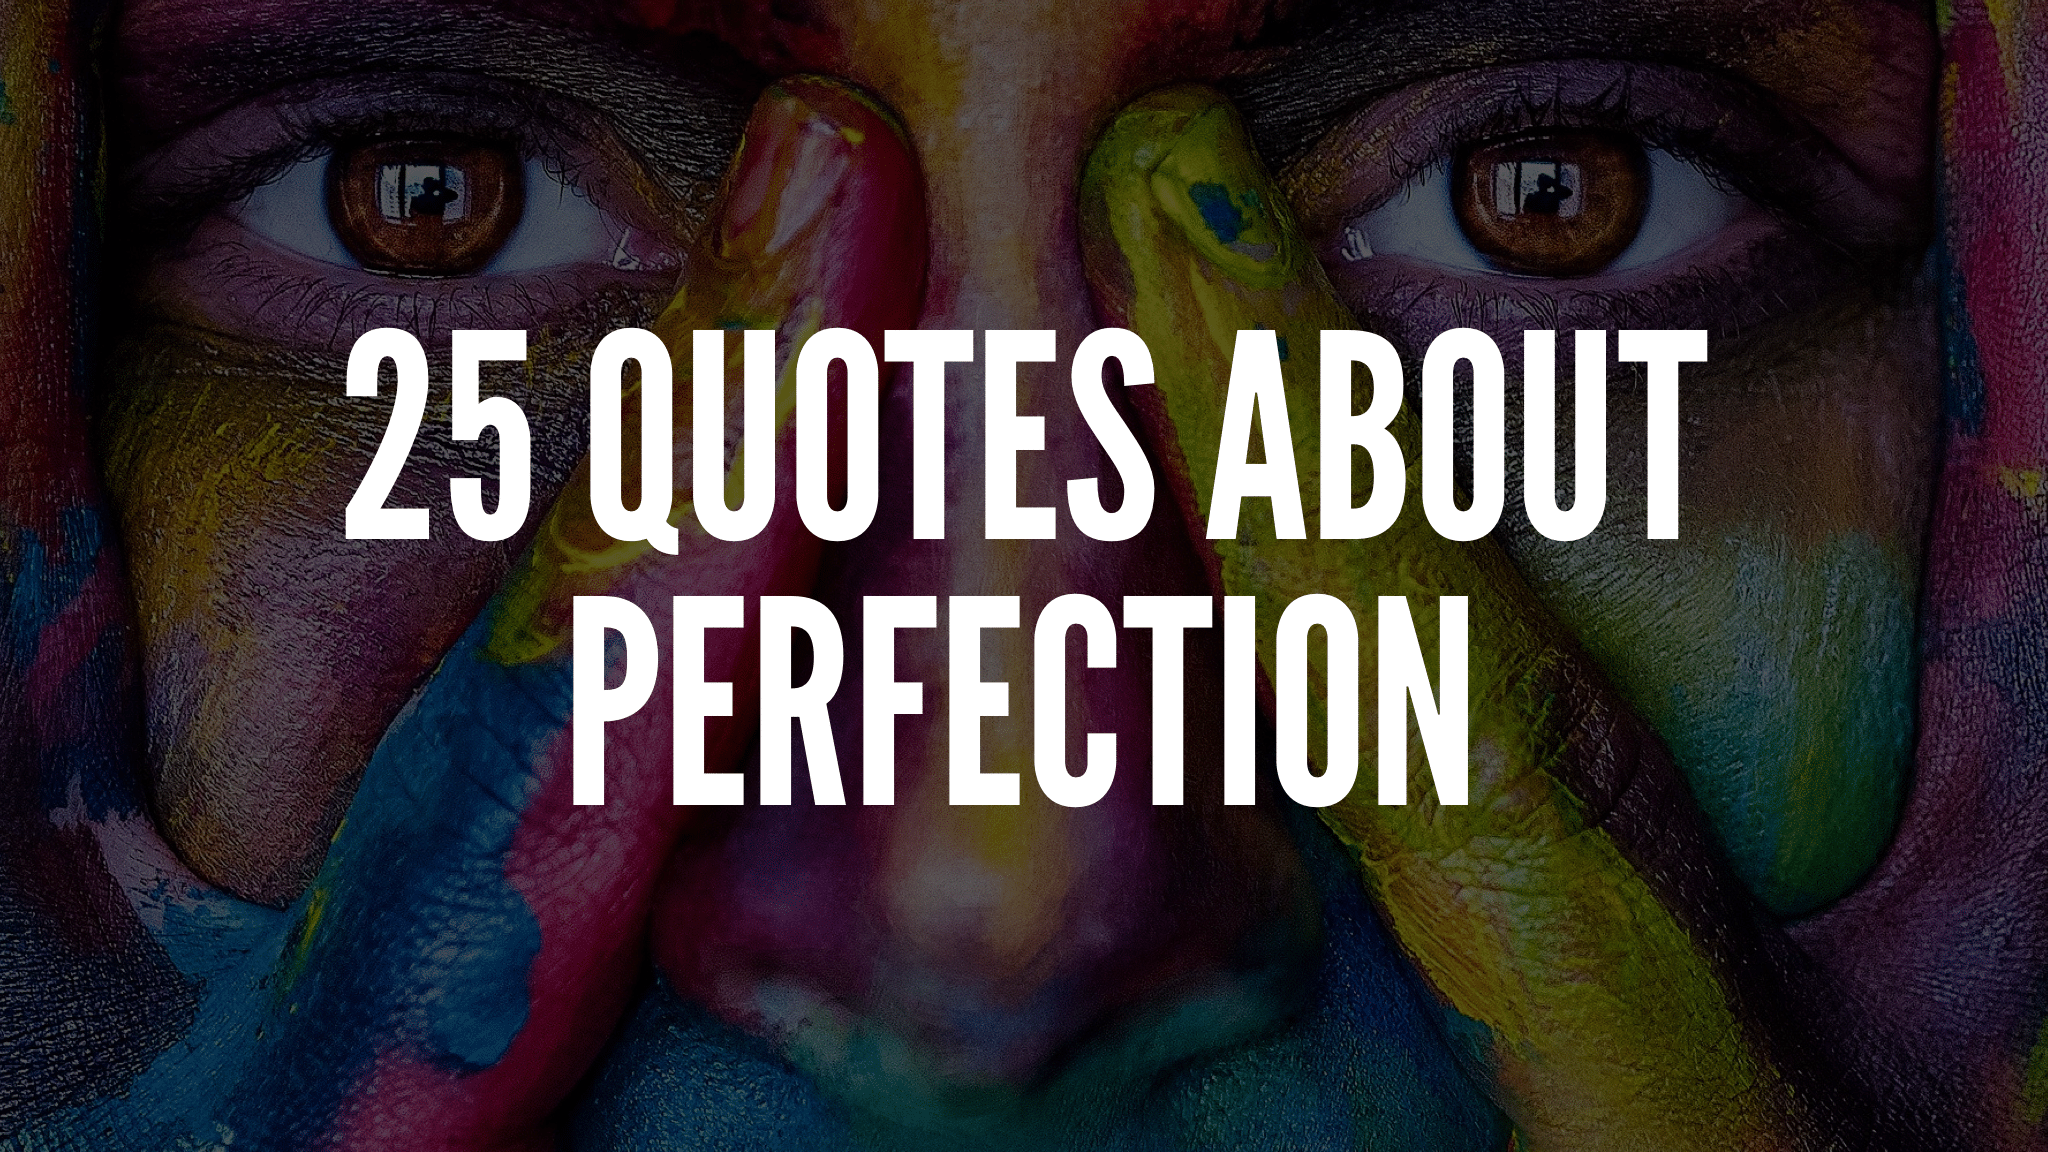 25 Quotes About Perfection